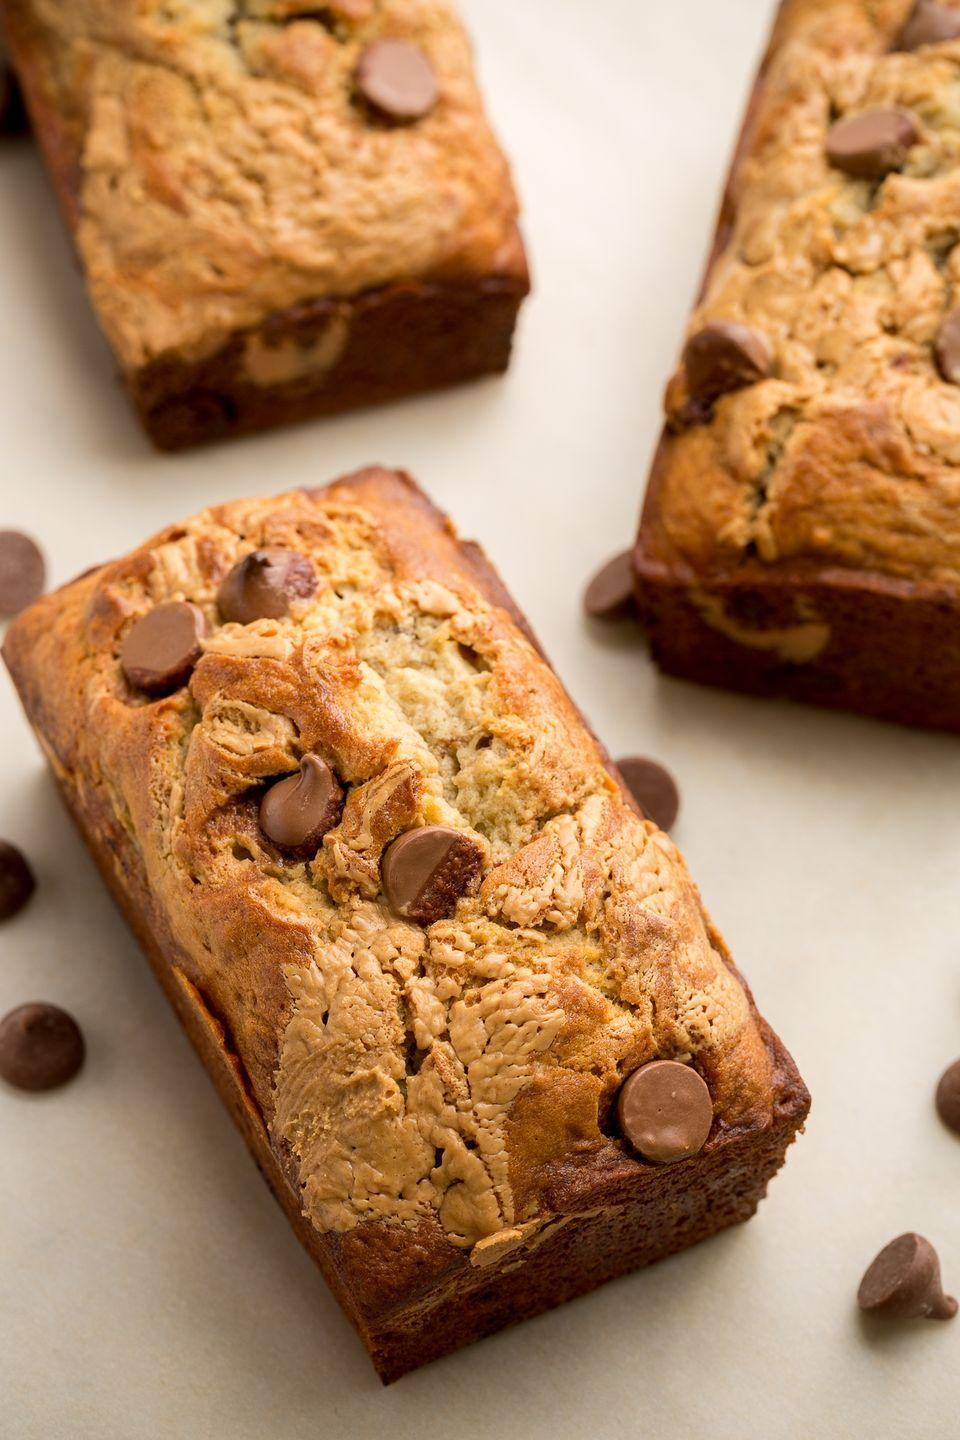 """<p>The best dessert combo ever makes its way to b bread</p><p>Get the recipe from <a href=""""/cooking/recipe-ideas/recipes/a46615/chocolate-peanut-butter-banana-bread-recipe/"""" data-ylk=""""slk:Delish"""" class=""""link rapid-noclick-resp"""">Delish</a>.</p>"""